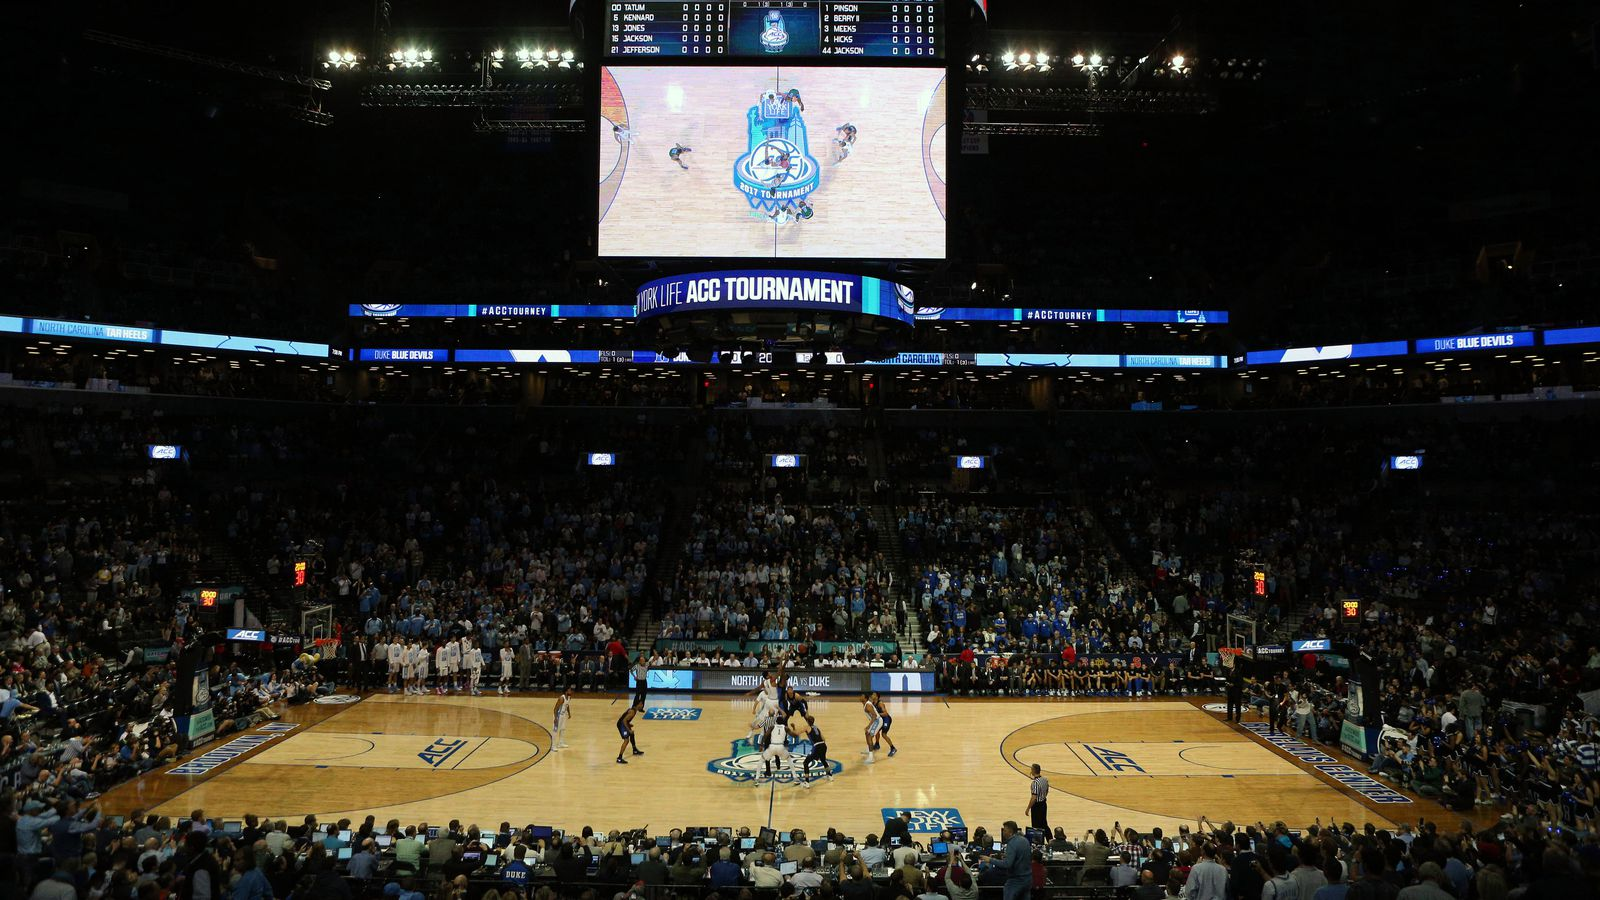 Mi miami heat game tonight tv channel - Ncaa Tournament Schedule 2017 Times Tv Channels For Every 1st Week Game Sbnation Com